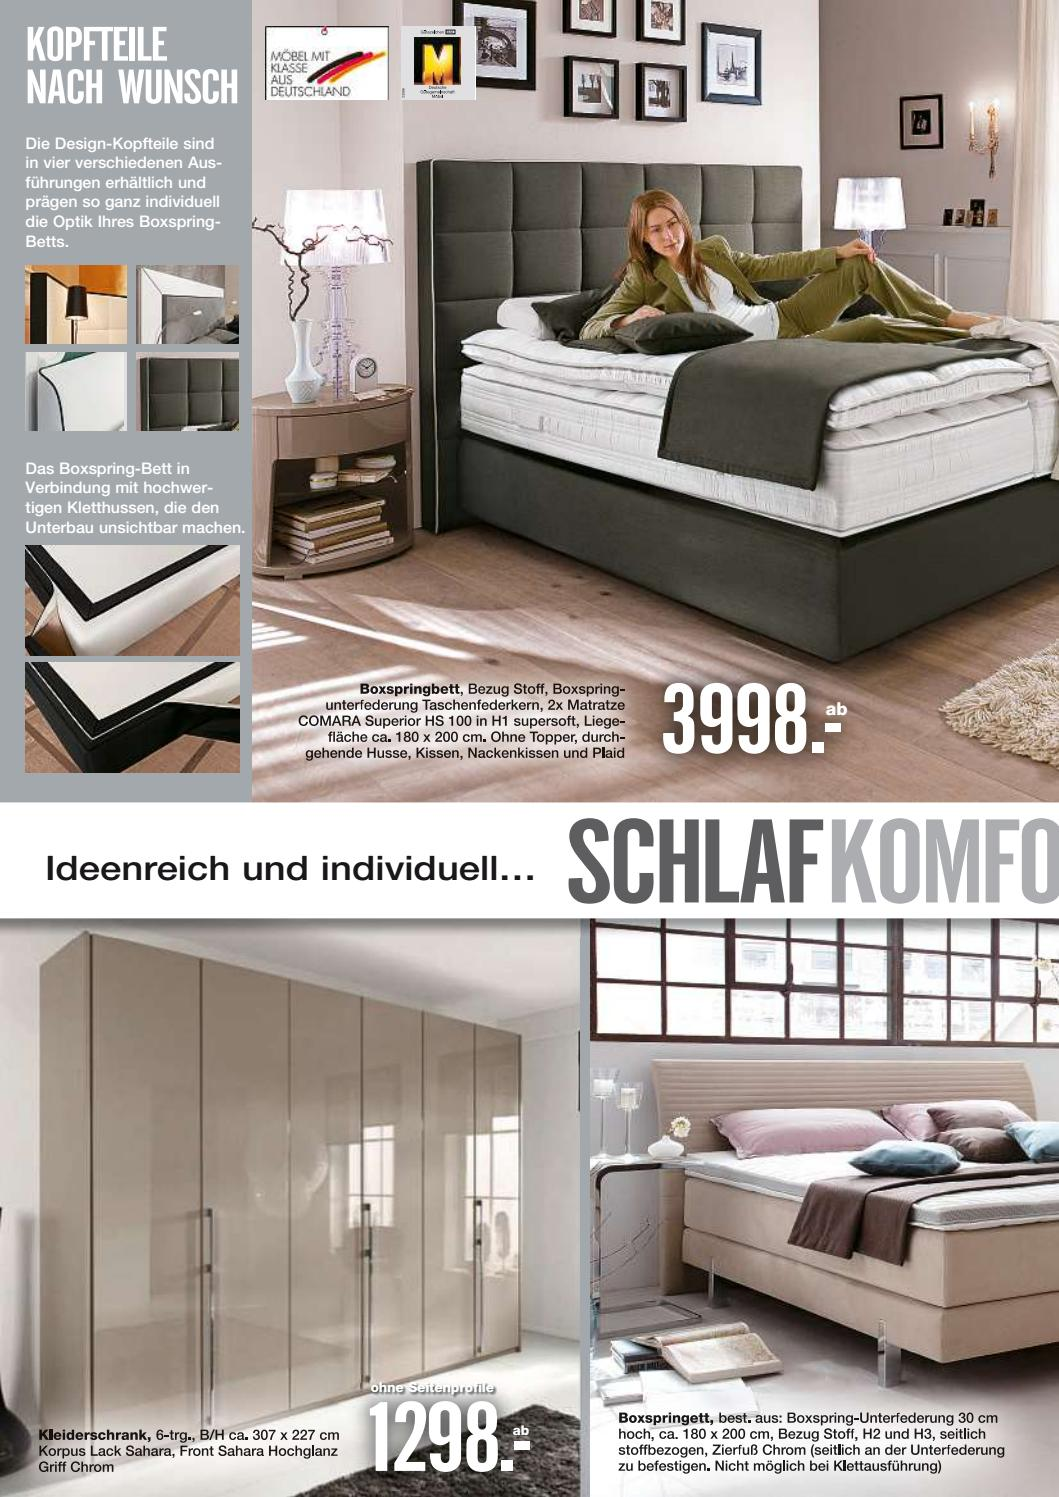 Boxspringbett Bezug Moebel Block Kw38 By Russmedia Digital Gmbh Issuu